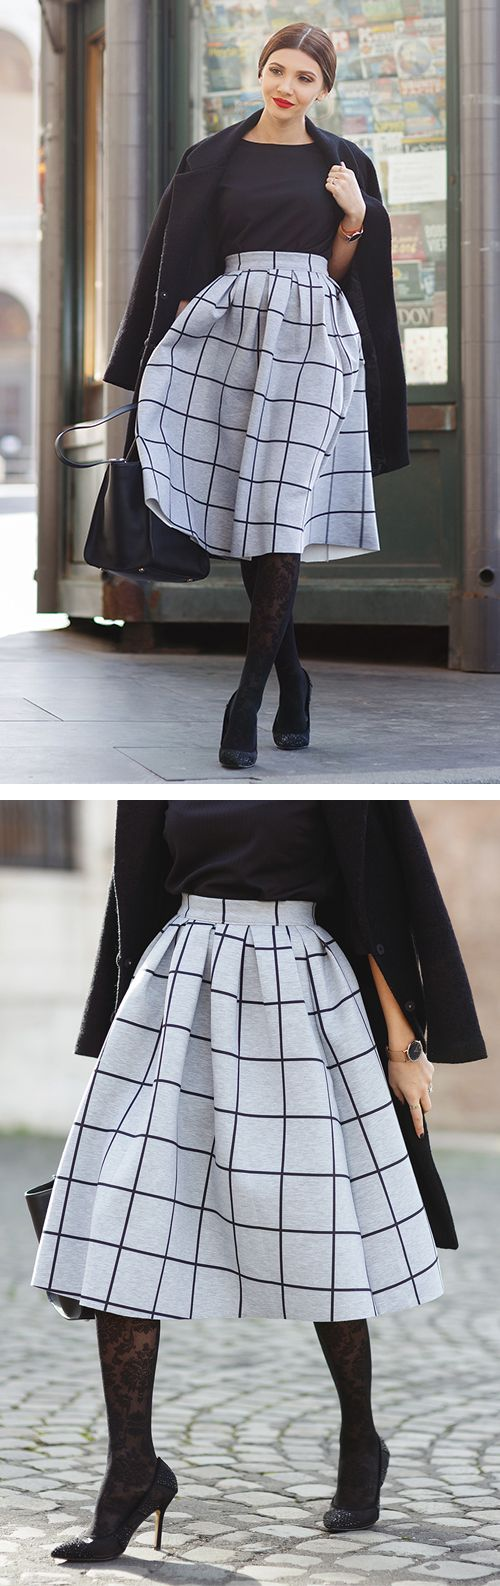 Extra 20% off Storewide Code: THX20 Ends Nov.10th Get super sophisticated yet casual and comfy in our Grid Pleat pleated midi skirt composed of scuba fabric! Style with a tucked denim button-down and closed toe heels for a chic street style ensemble! Grid Print Pleated Midi Skirt featured by larisacostea Blog